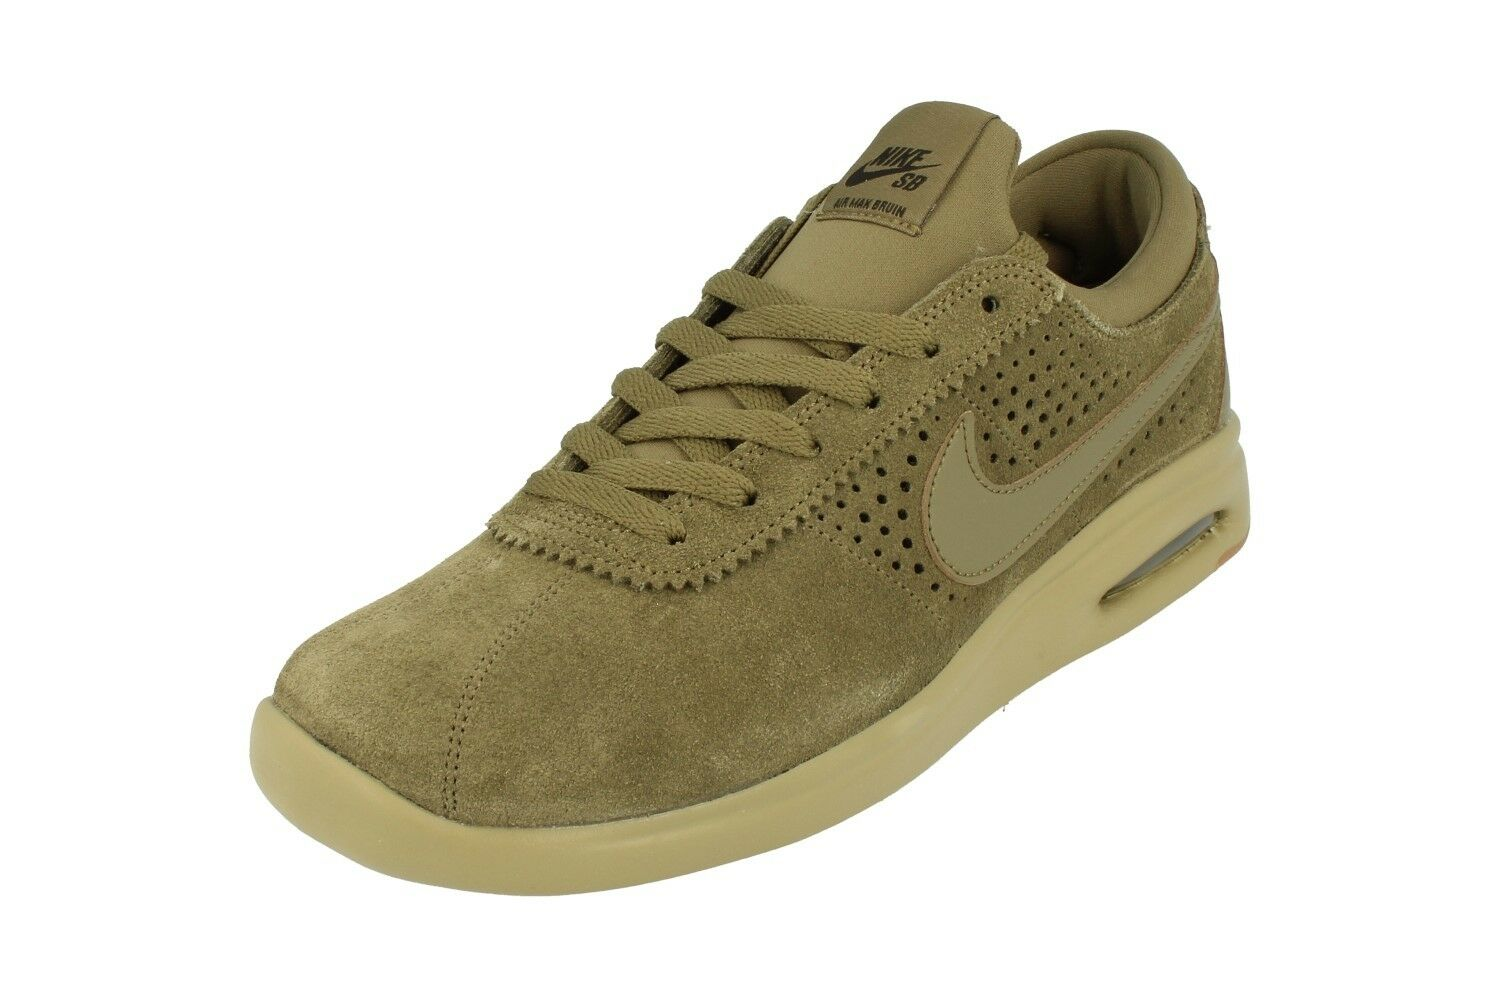 nike air max - mens trainer 200 dampf: 882097 sneakers, schuhe, 200 trainer 149c66